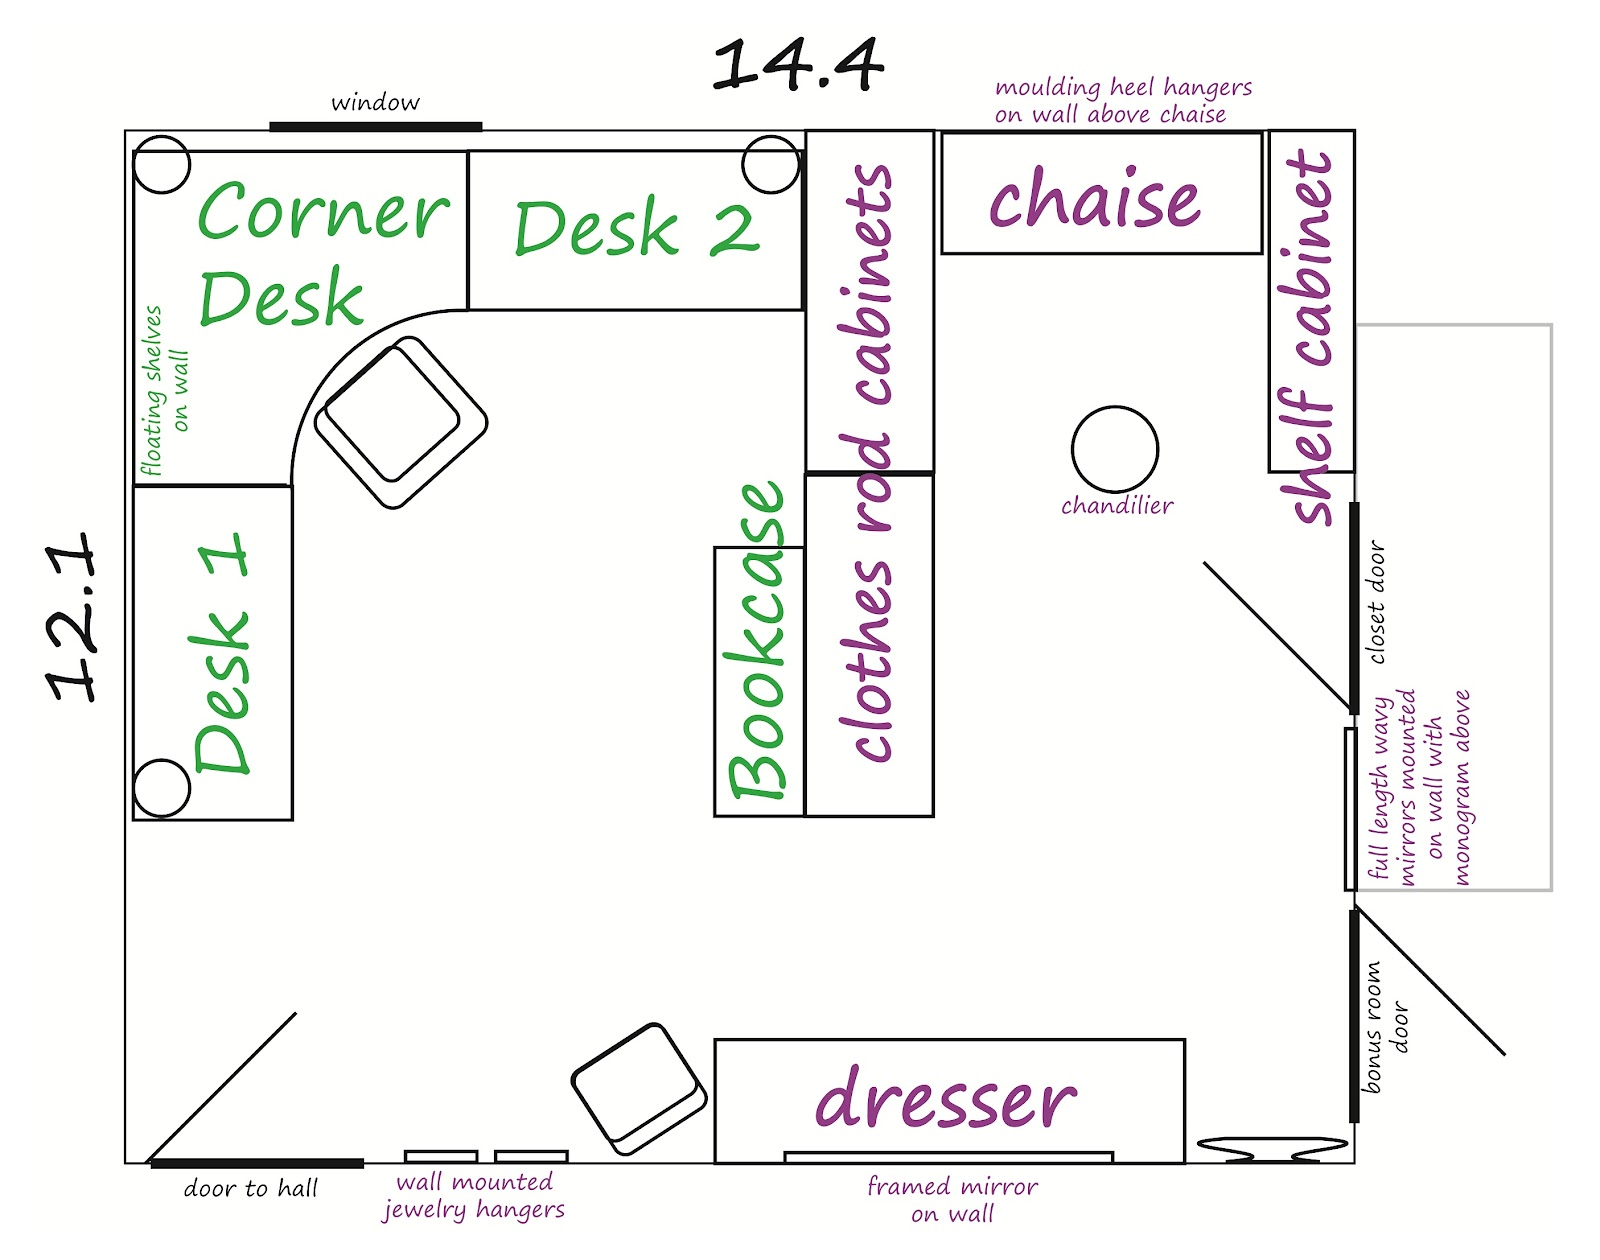 foundation dezin decor work layout 39 s office layout plan